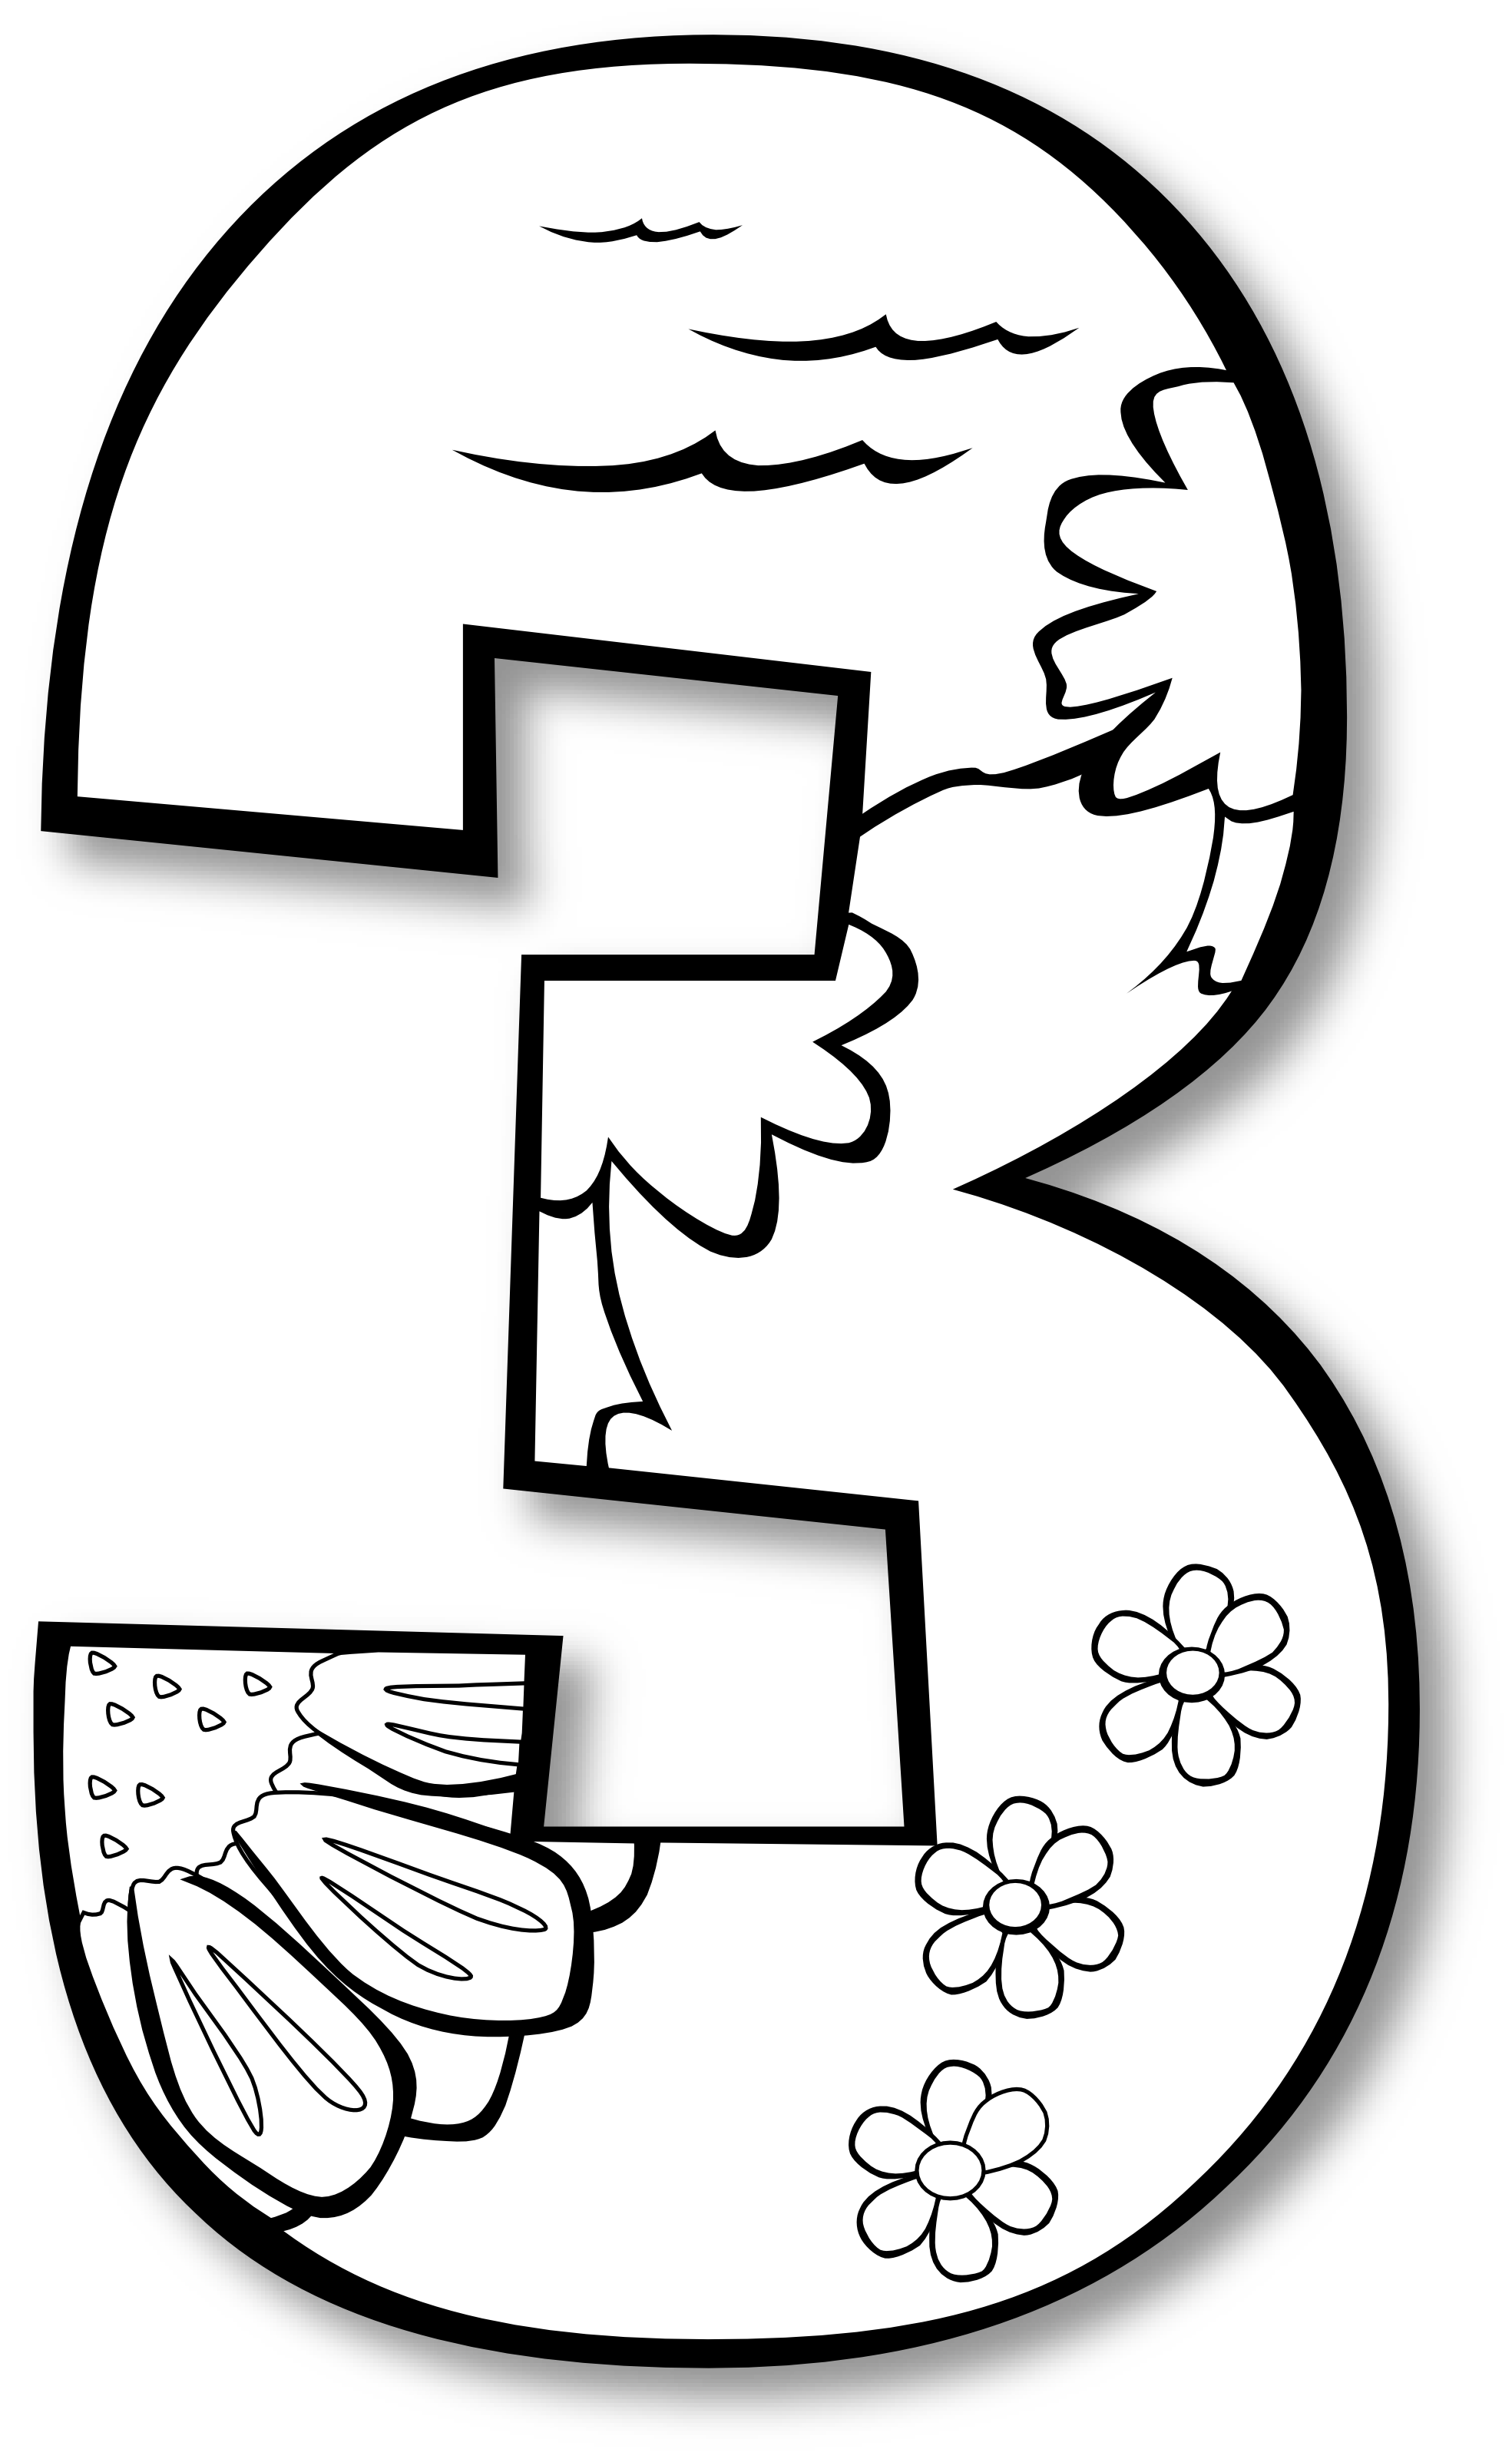 Numbers 1 to 10 clipart black and white clipart free stock 1 clipart black and white - ClipartFox clipart free stock